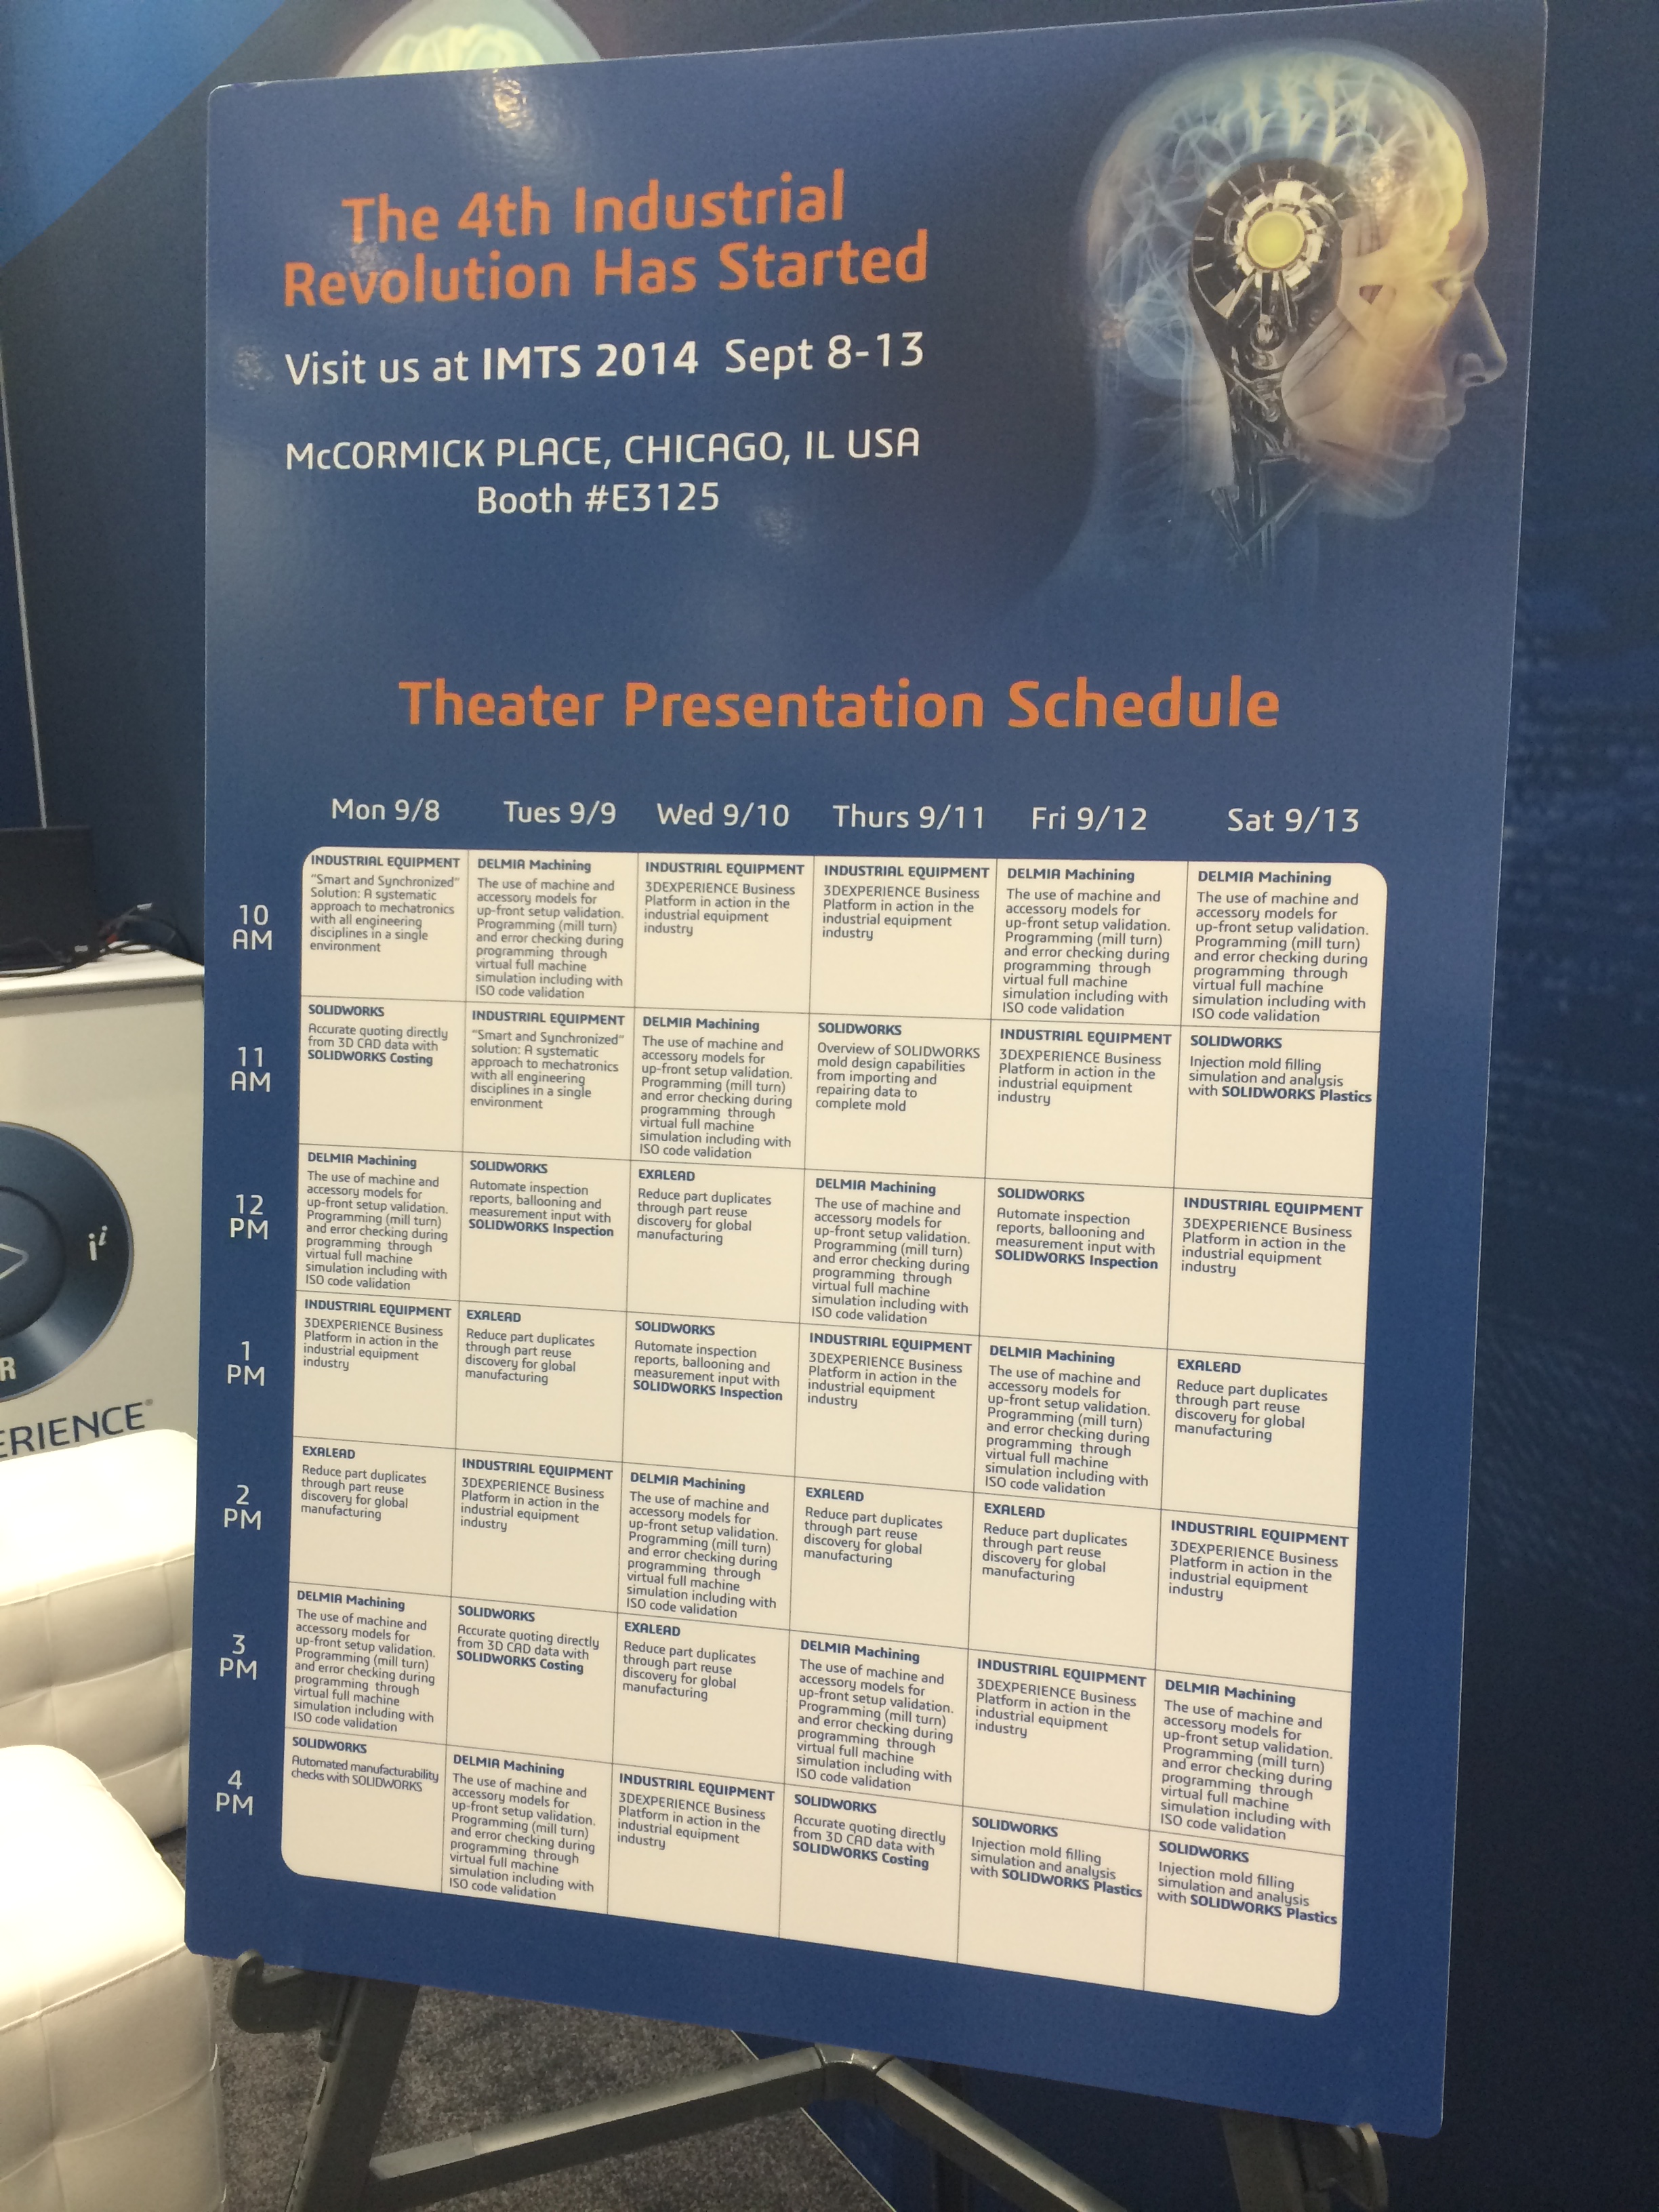 Incredible things will happen at #IMTS 2014 will you be part of it?